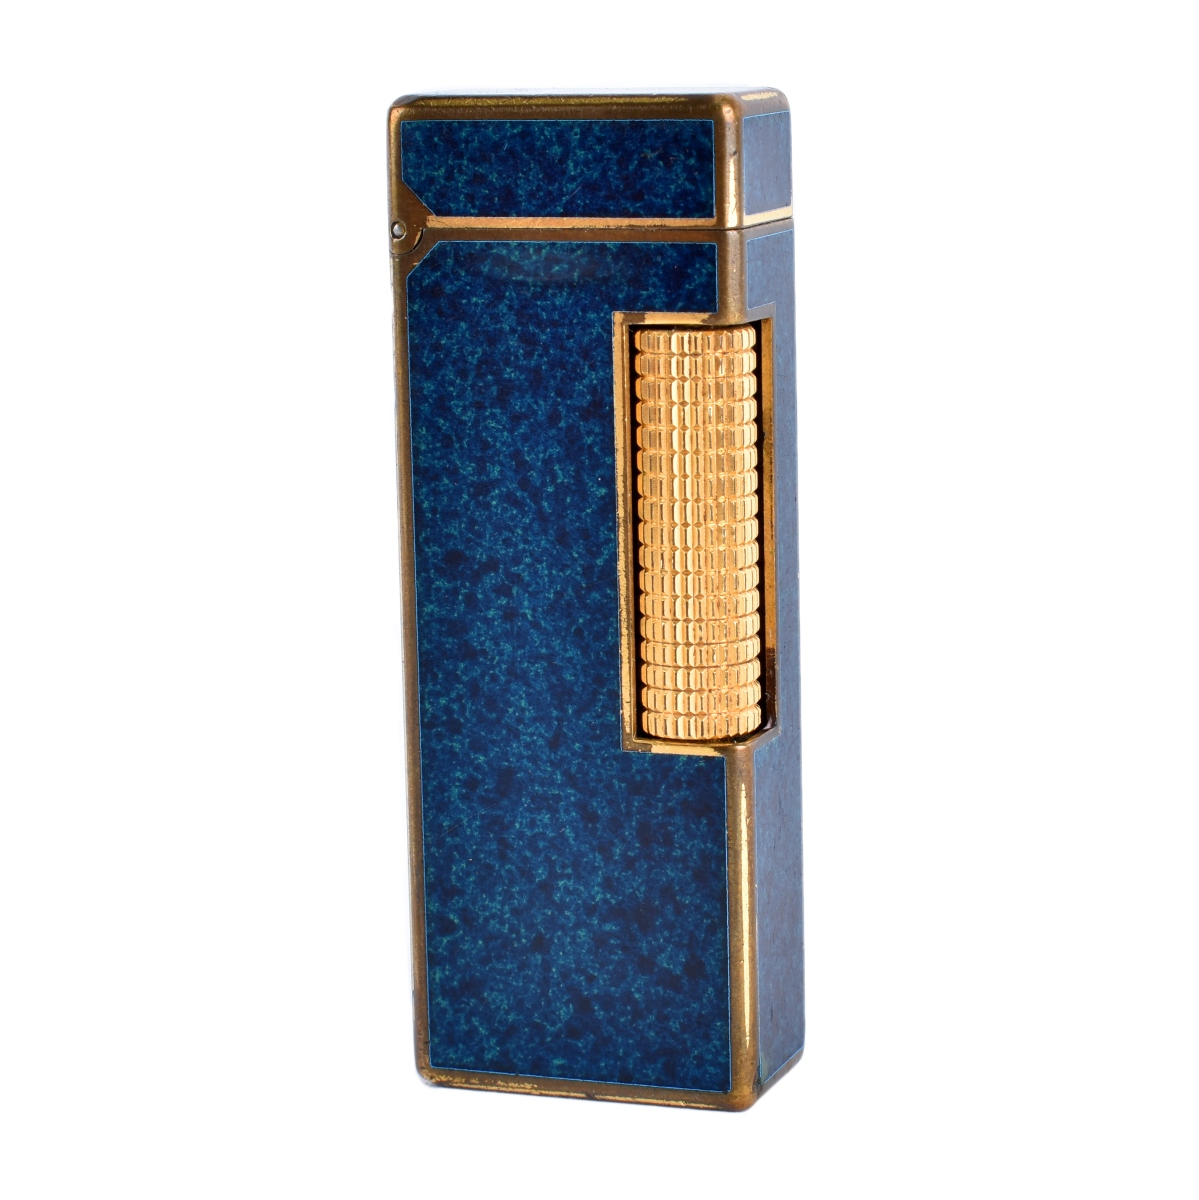 Dunhill Gold Plated & Lacquer Cigarette Lighter